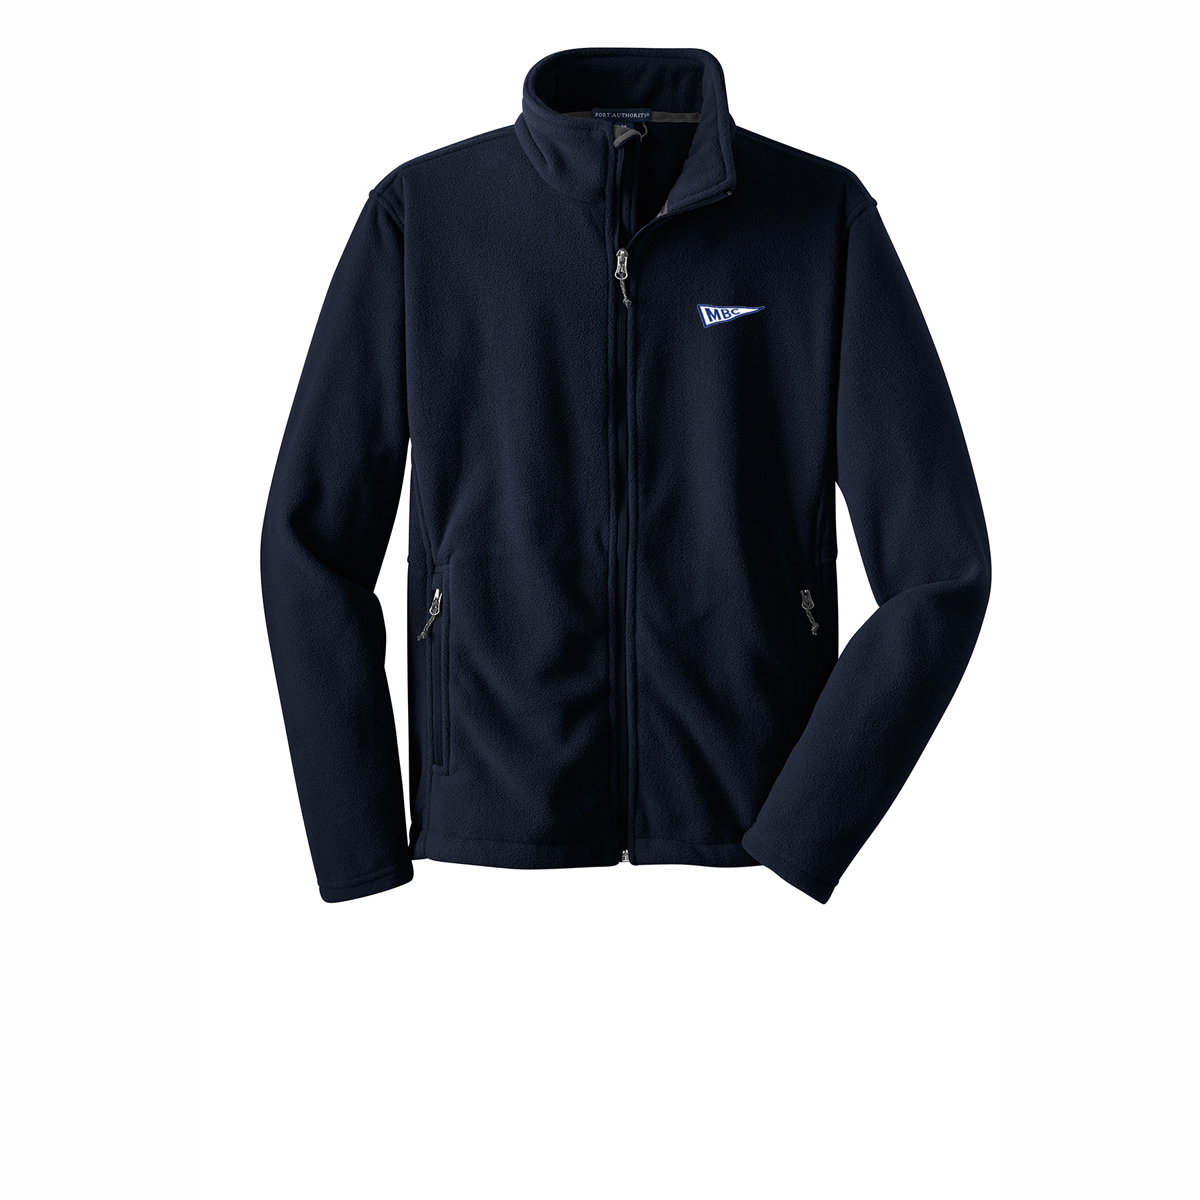 Monmouth Boat Club - Youth Value Fleece Jacket